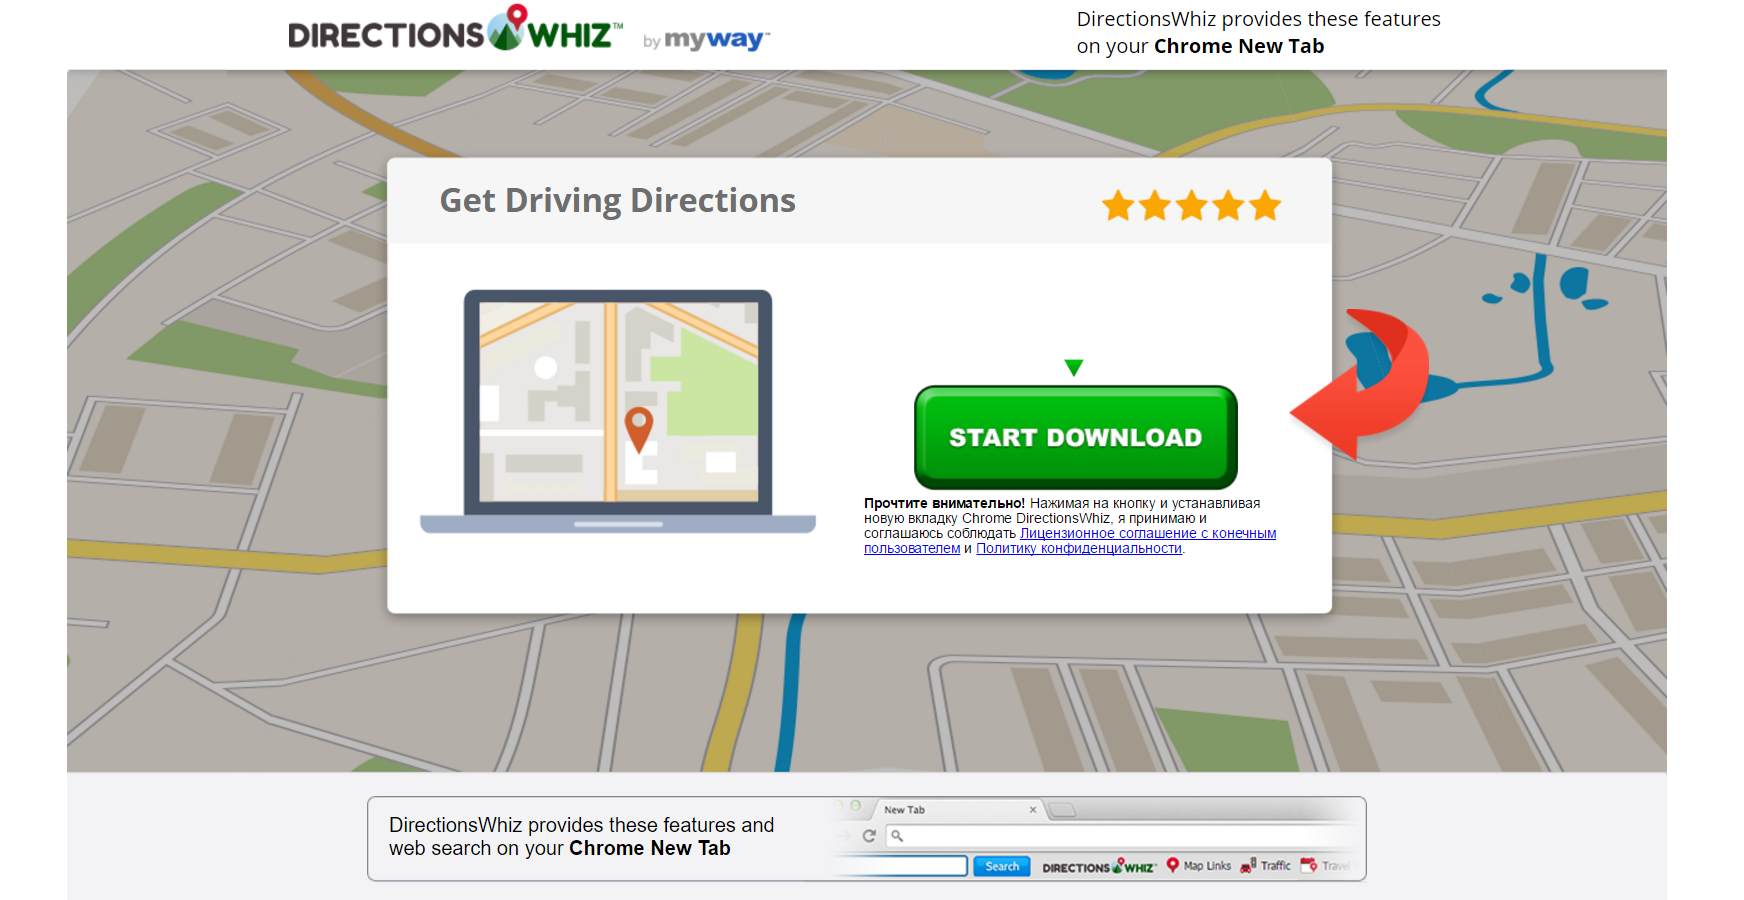 ads by Directions Whiz